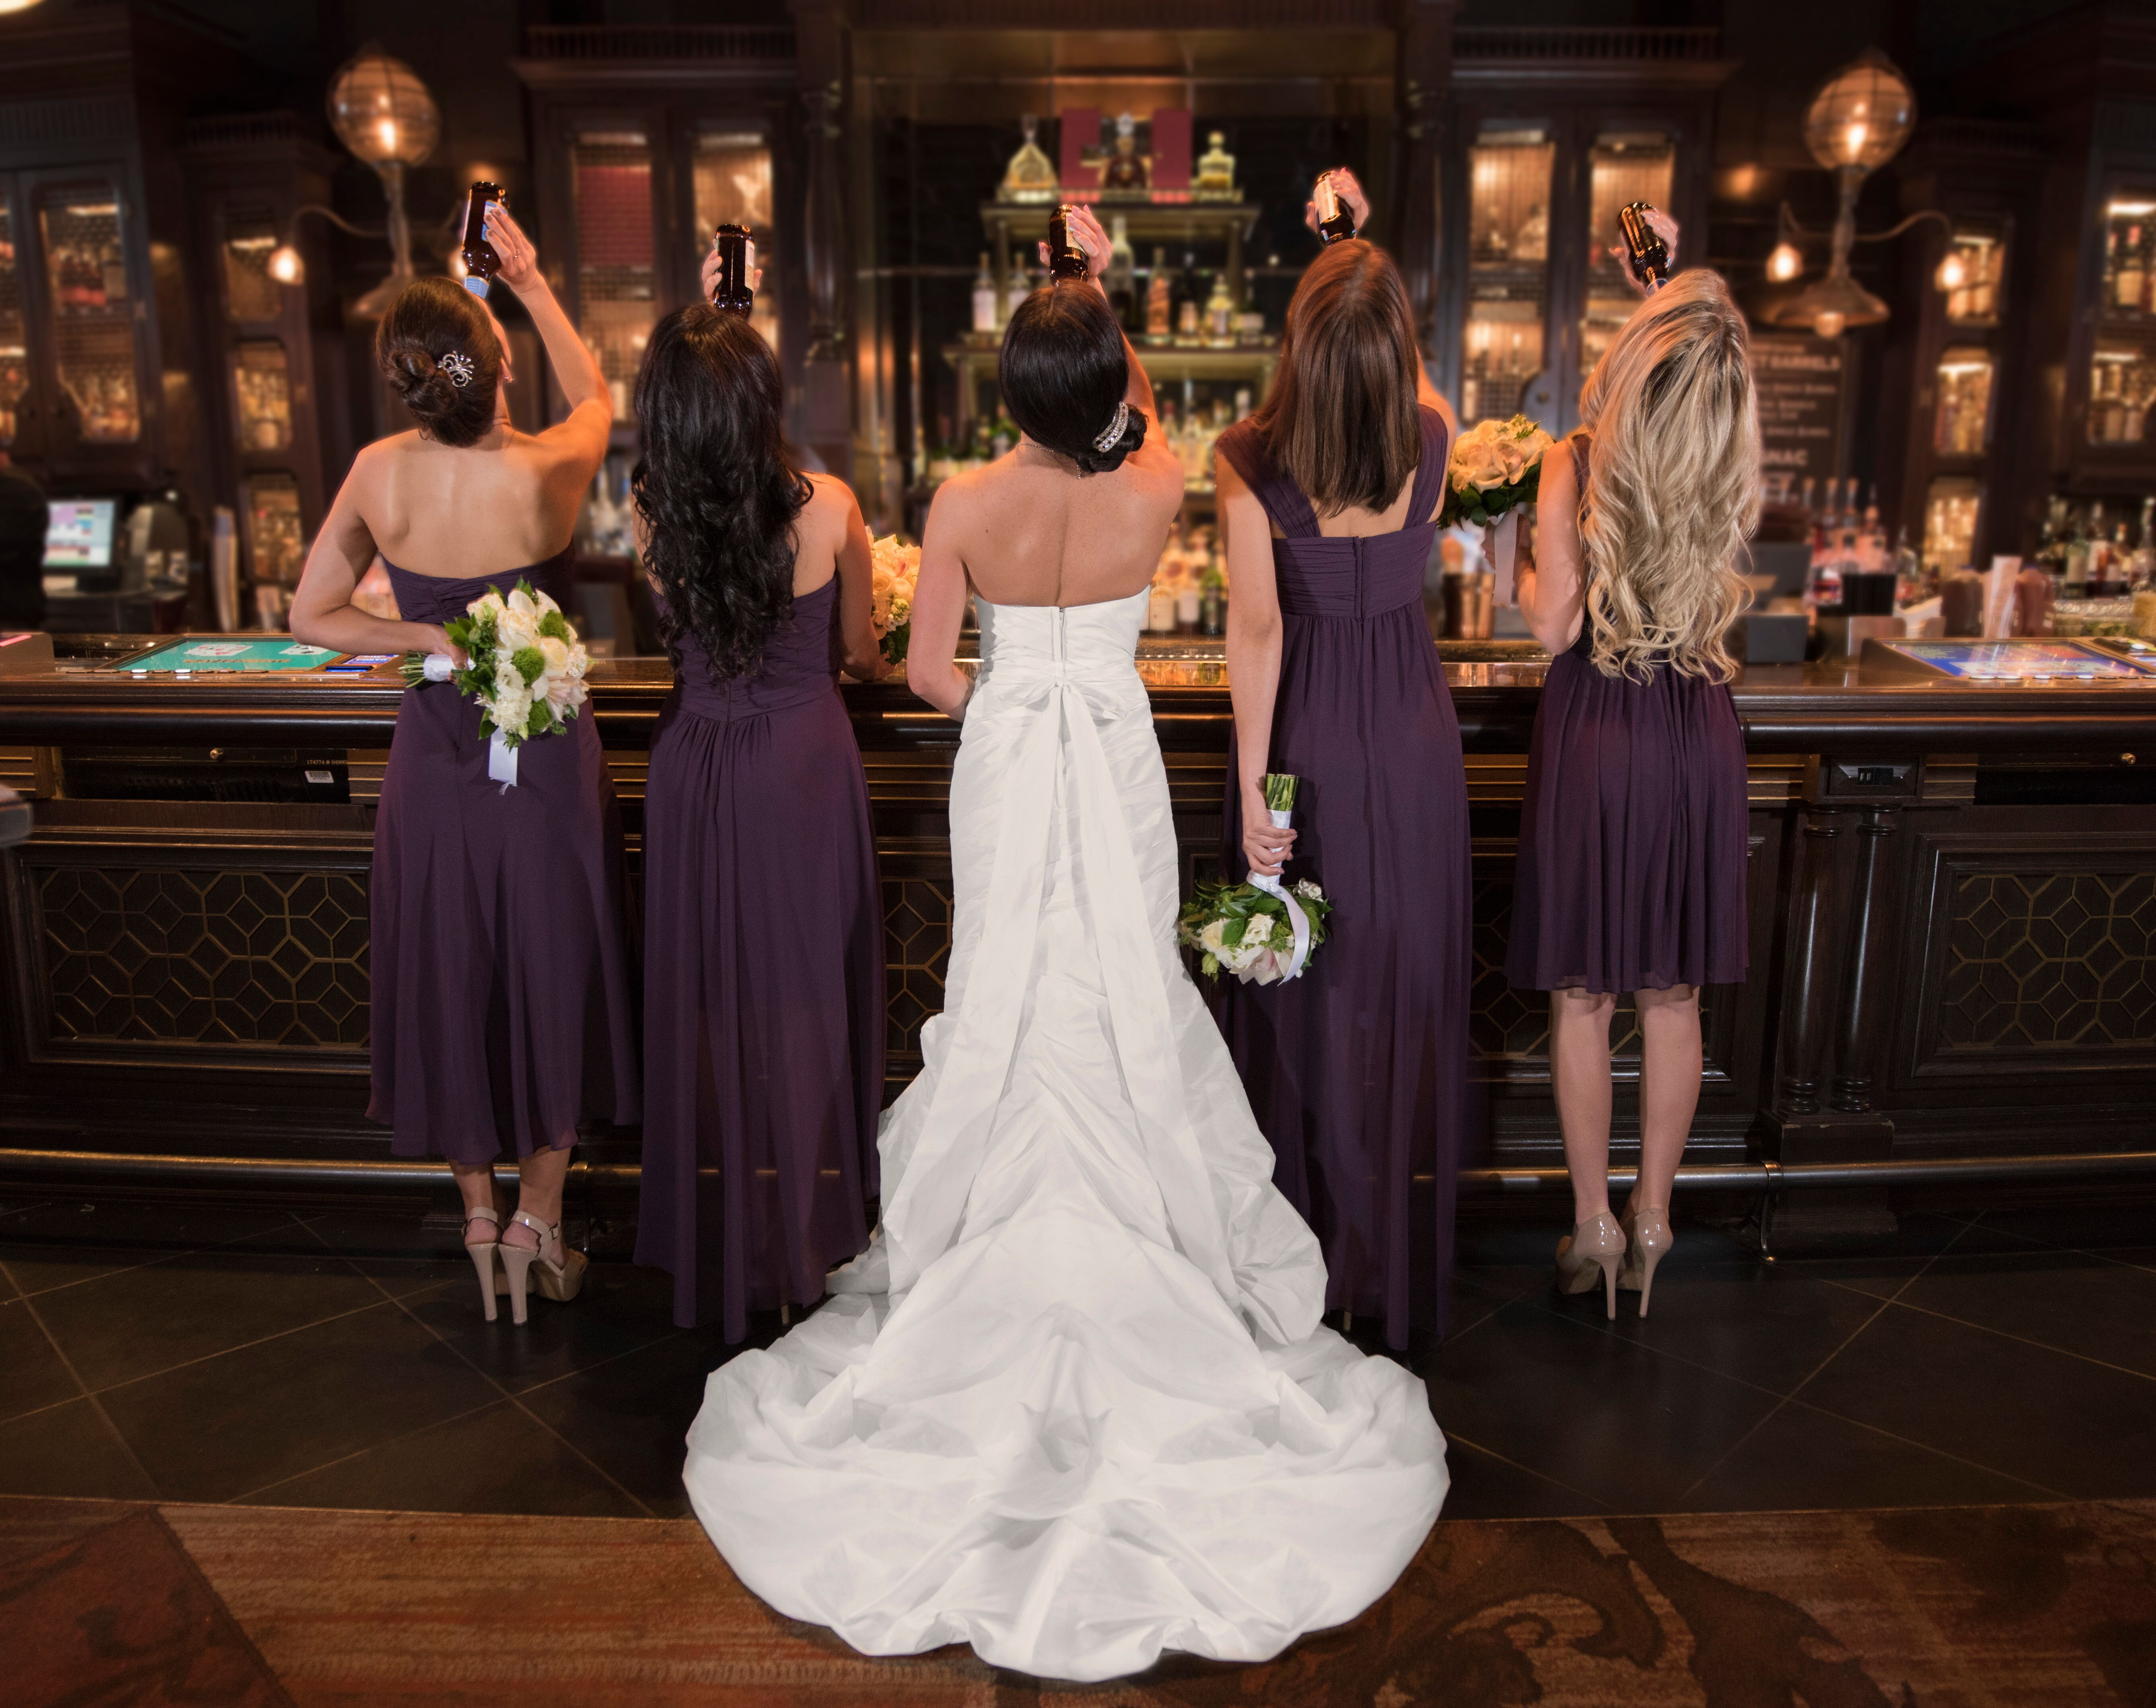 Grand Jour Mother Of The Bride Outfits And: Weddings At MGM Grand - Forever Grand